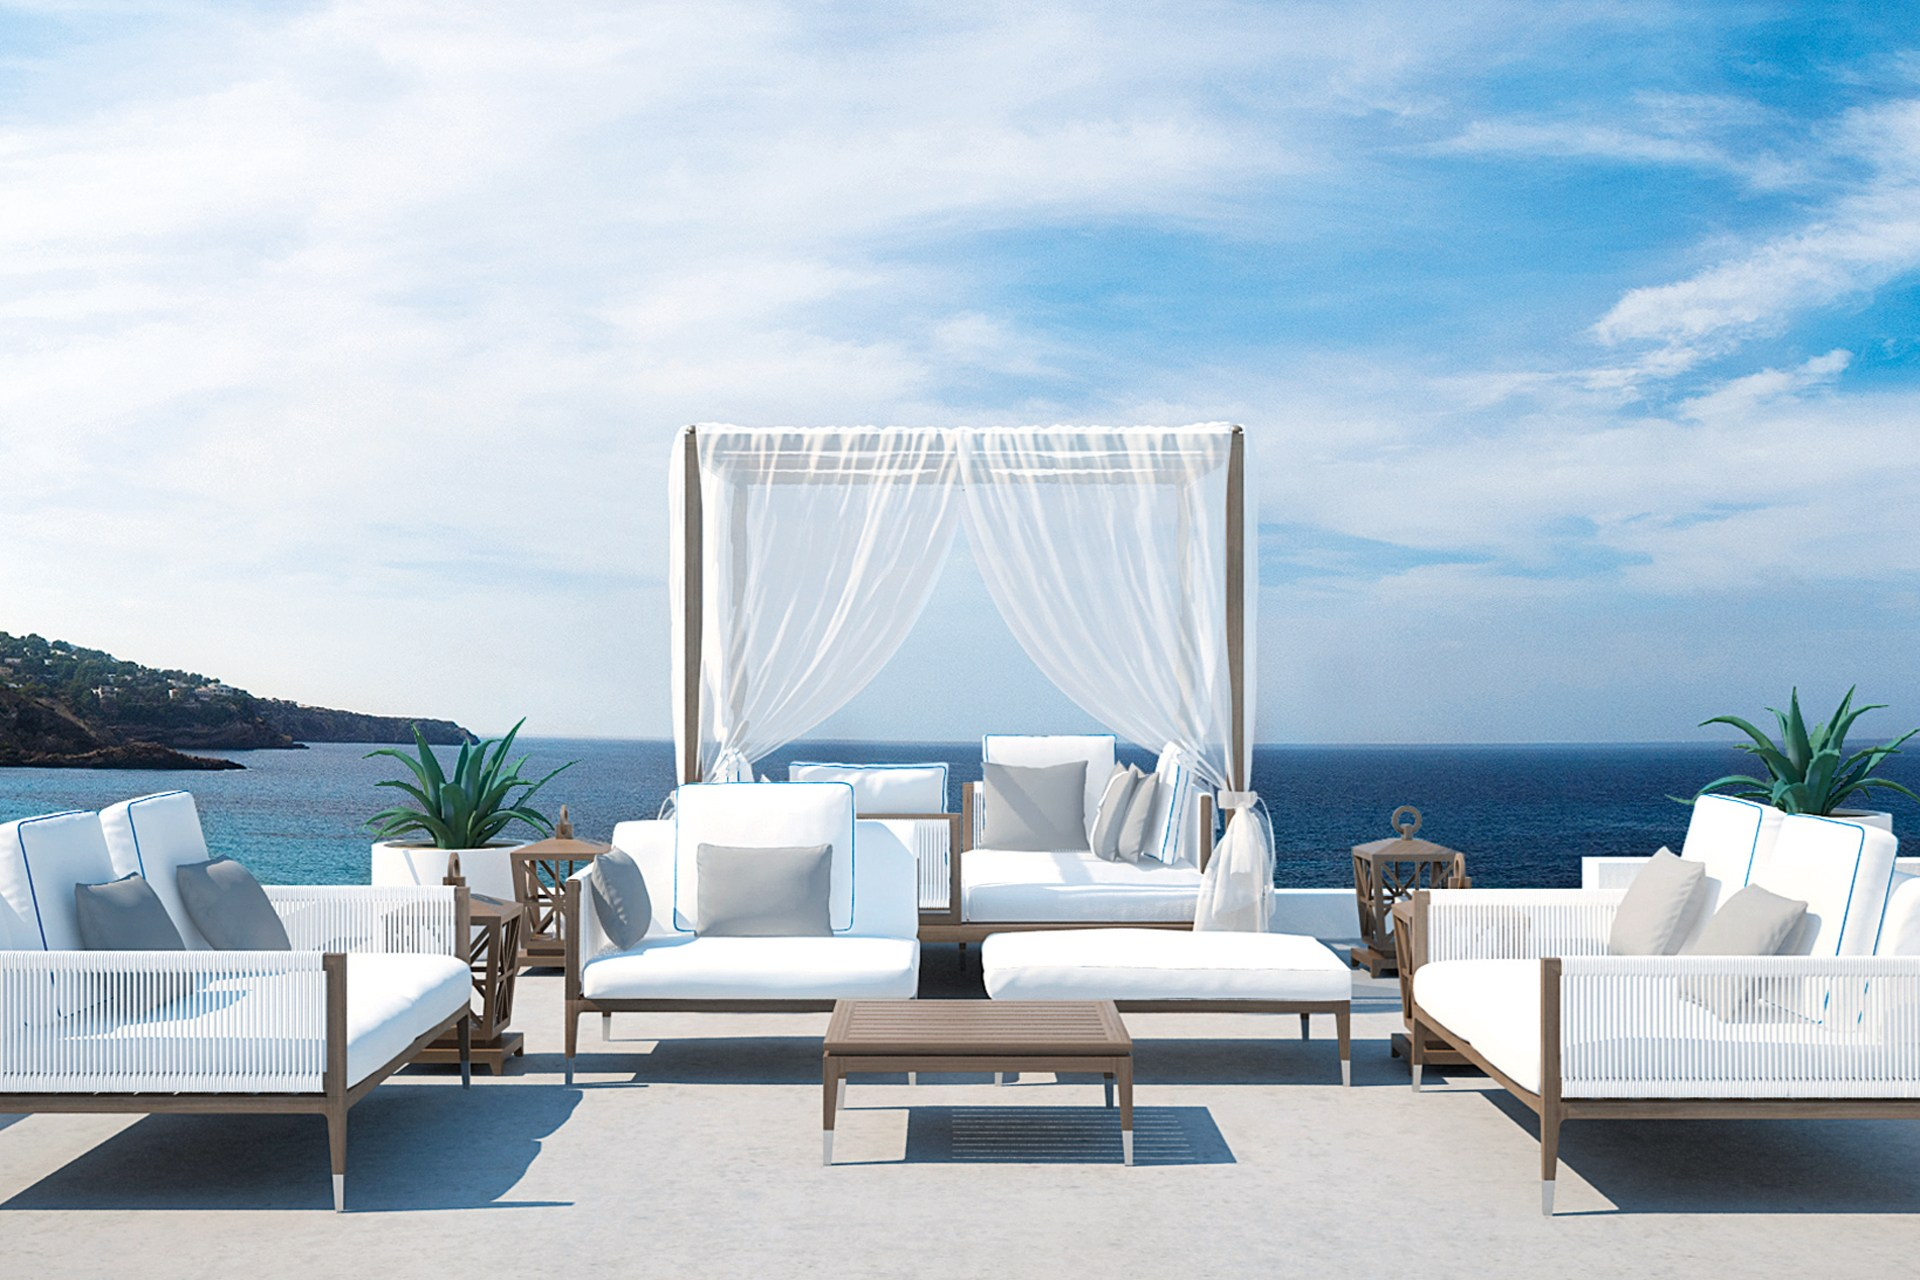 ibiza exclusive charter :: Cotton Beach Club Ibiza - first class luxury